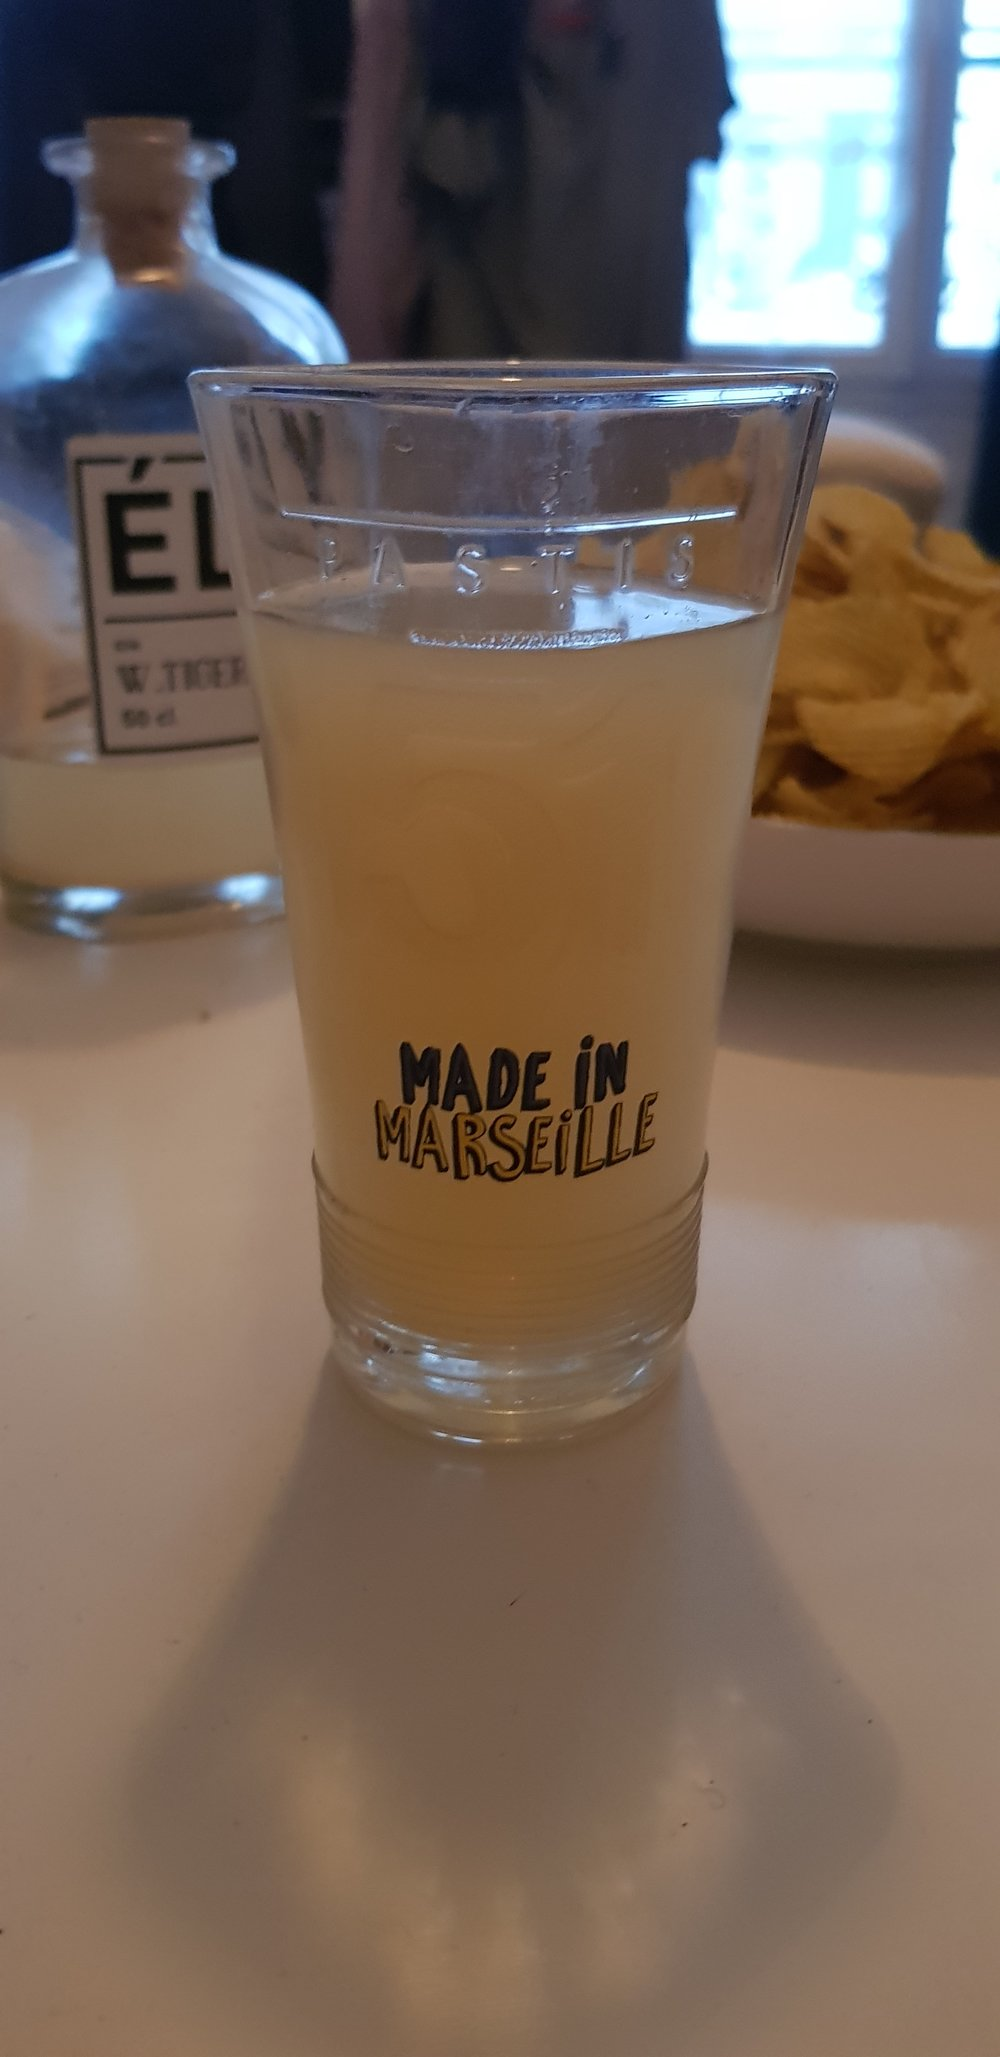 Pastis, a Marseille speciality